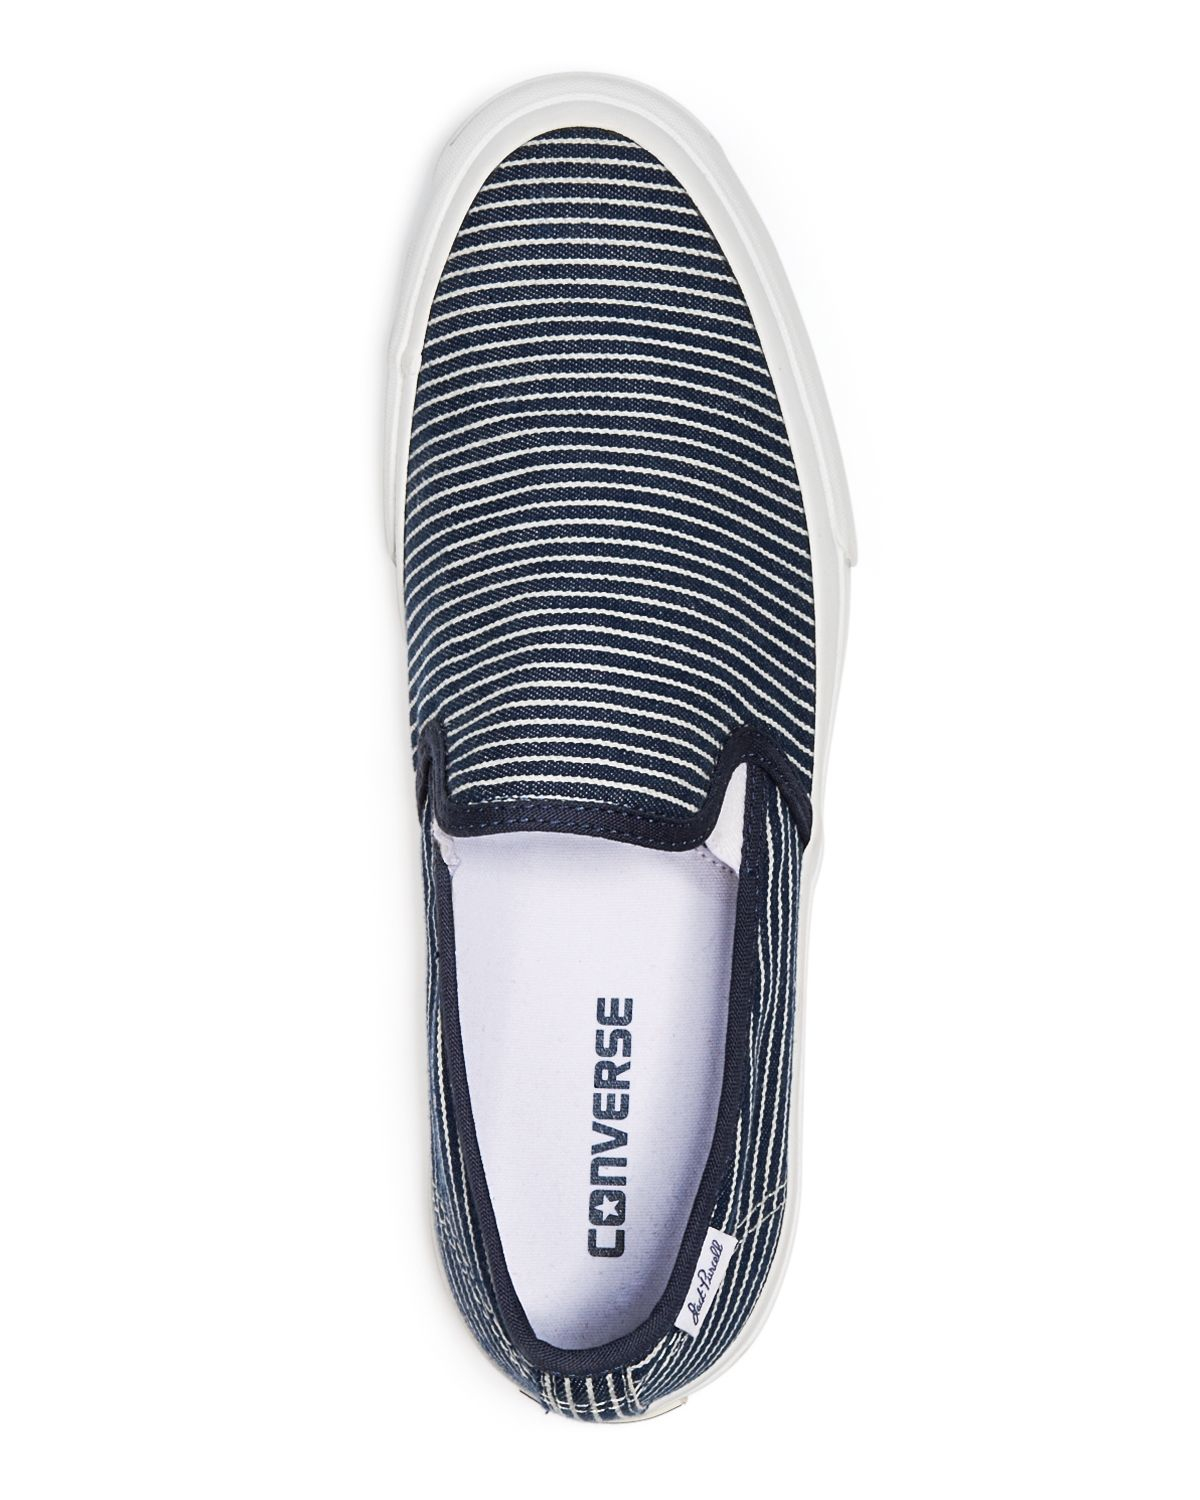 1834e157a69a Lyst - Converse Jack Purcell Ii Striped Slip On Sneakers in Blue for Men